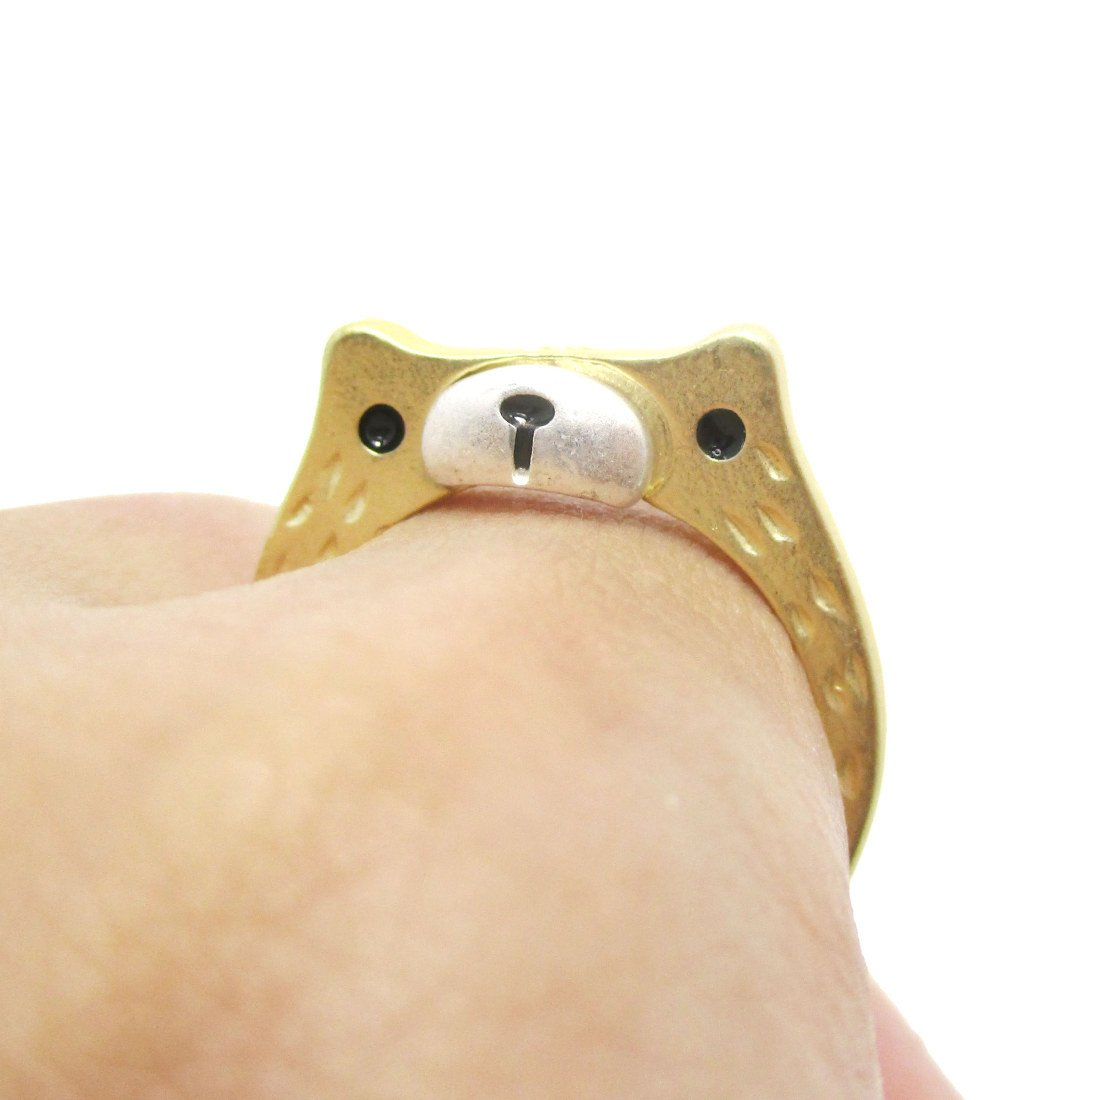 Adorable Teddy Bear Face Shaped Animal Ring in Gold